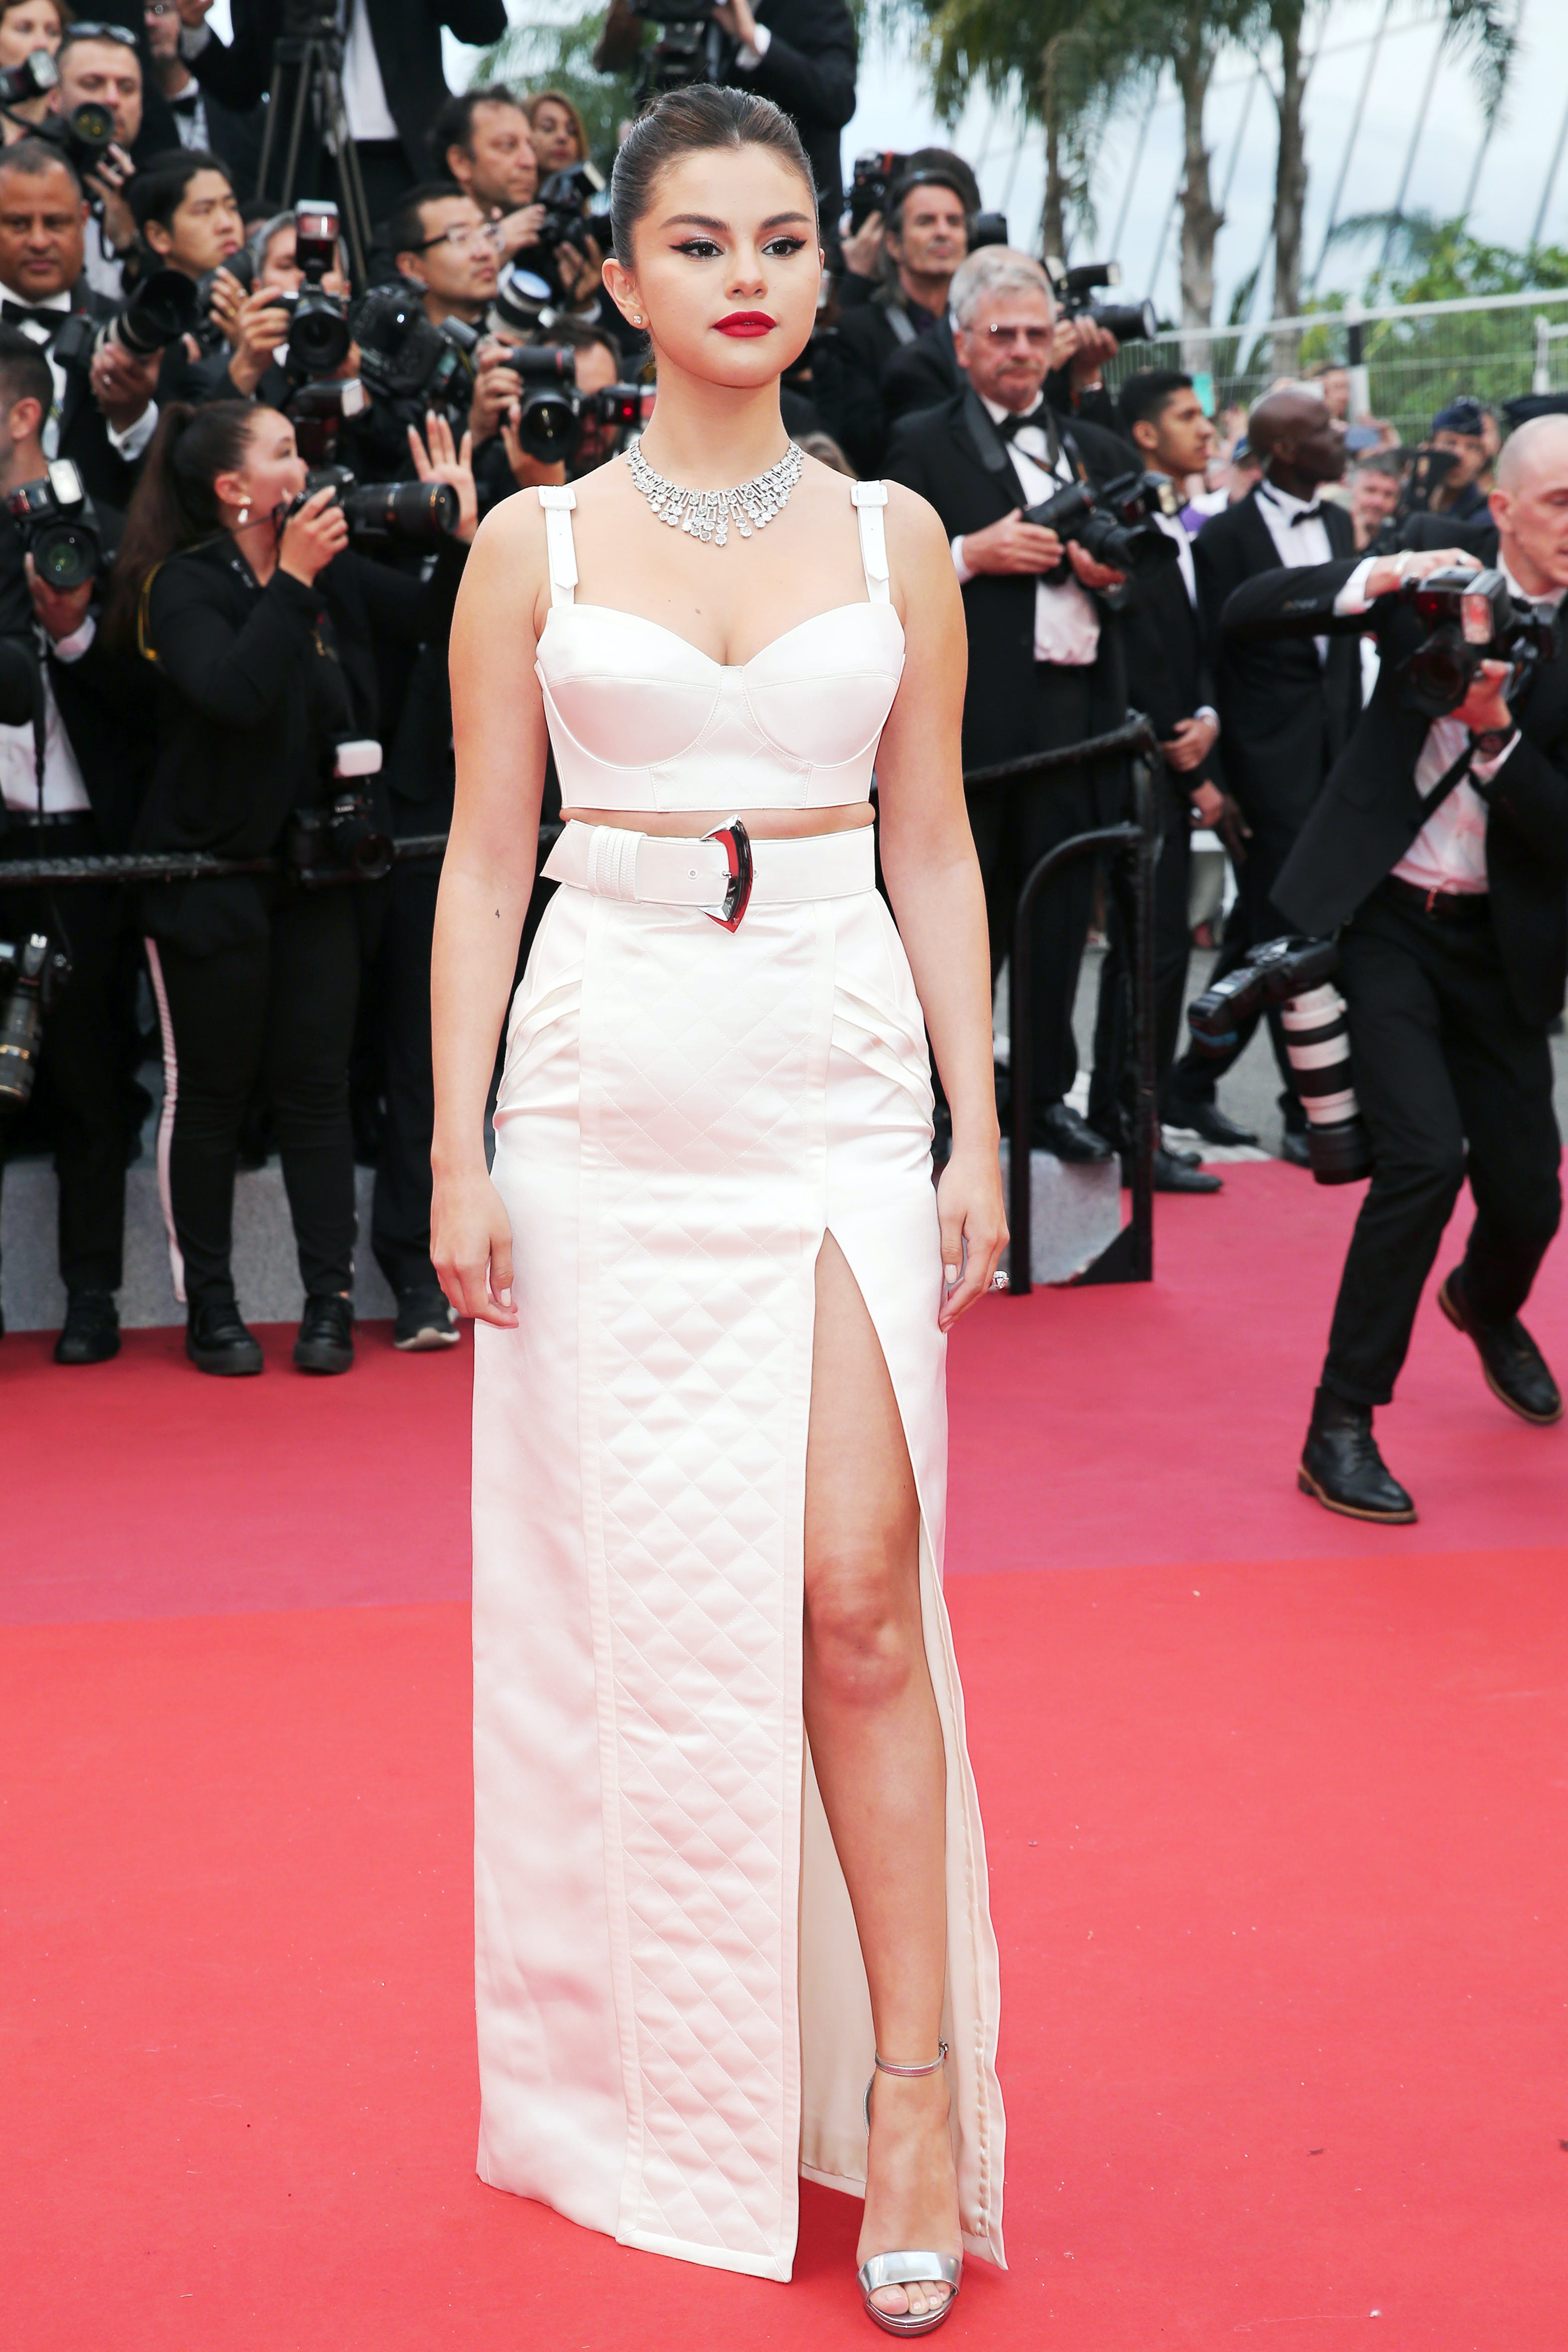 Selena Gomez at the 72nd annual Cannes Film Festival